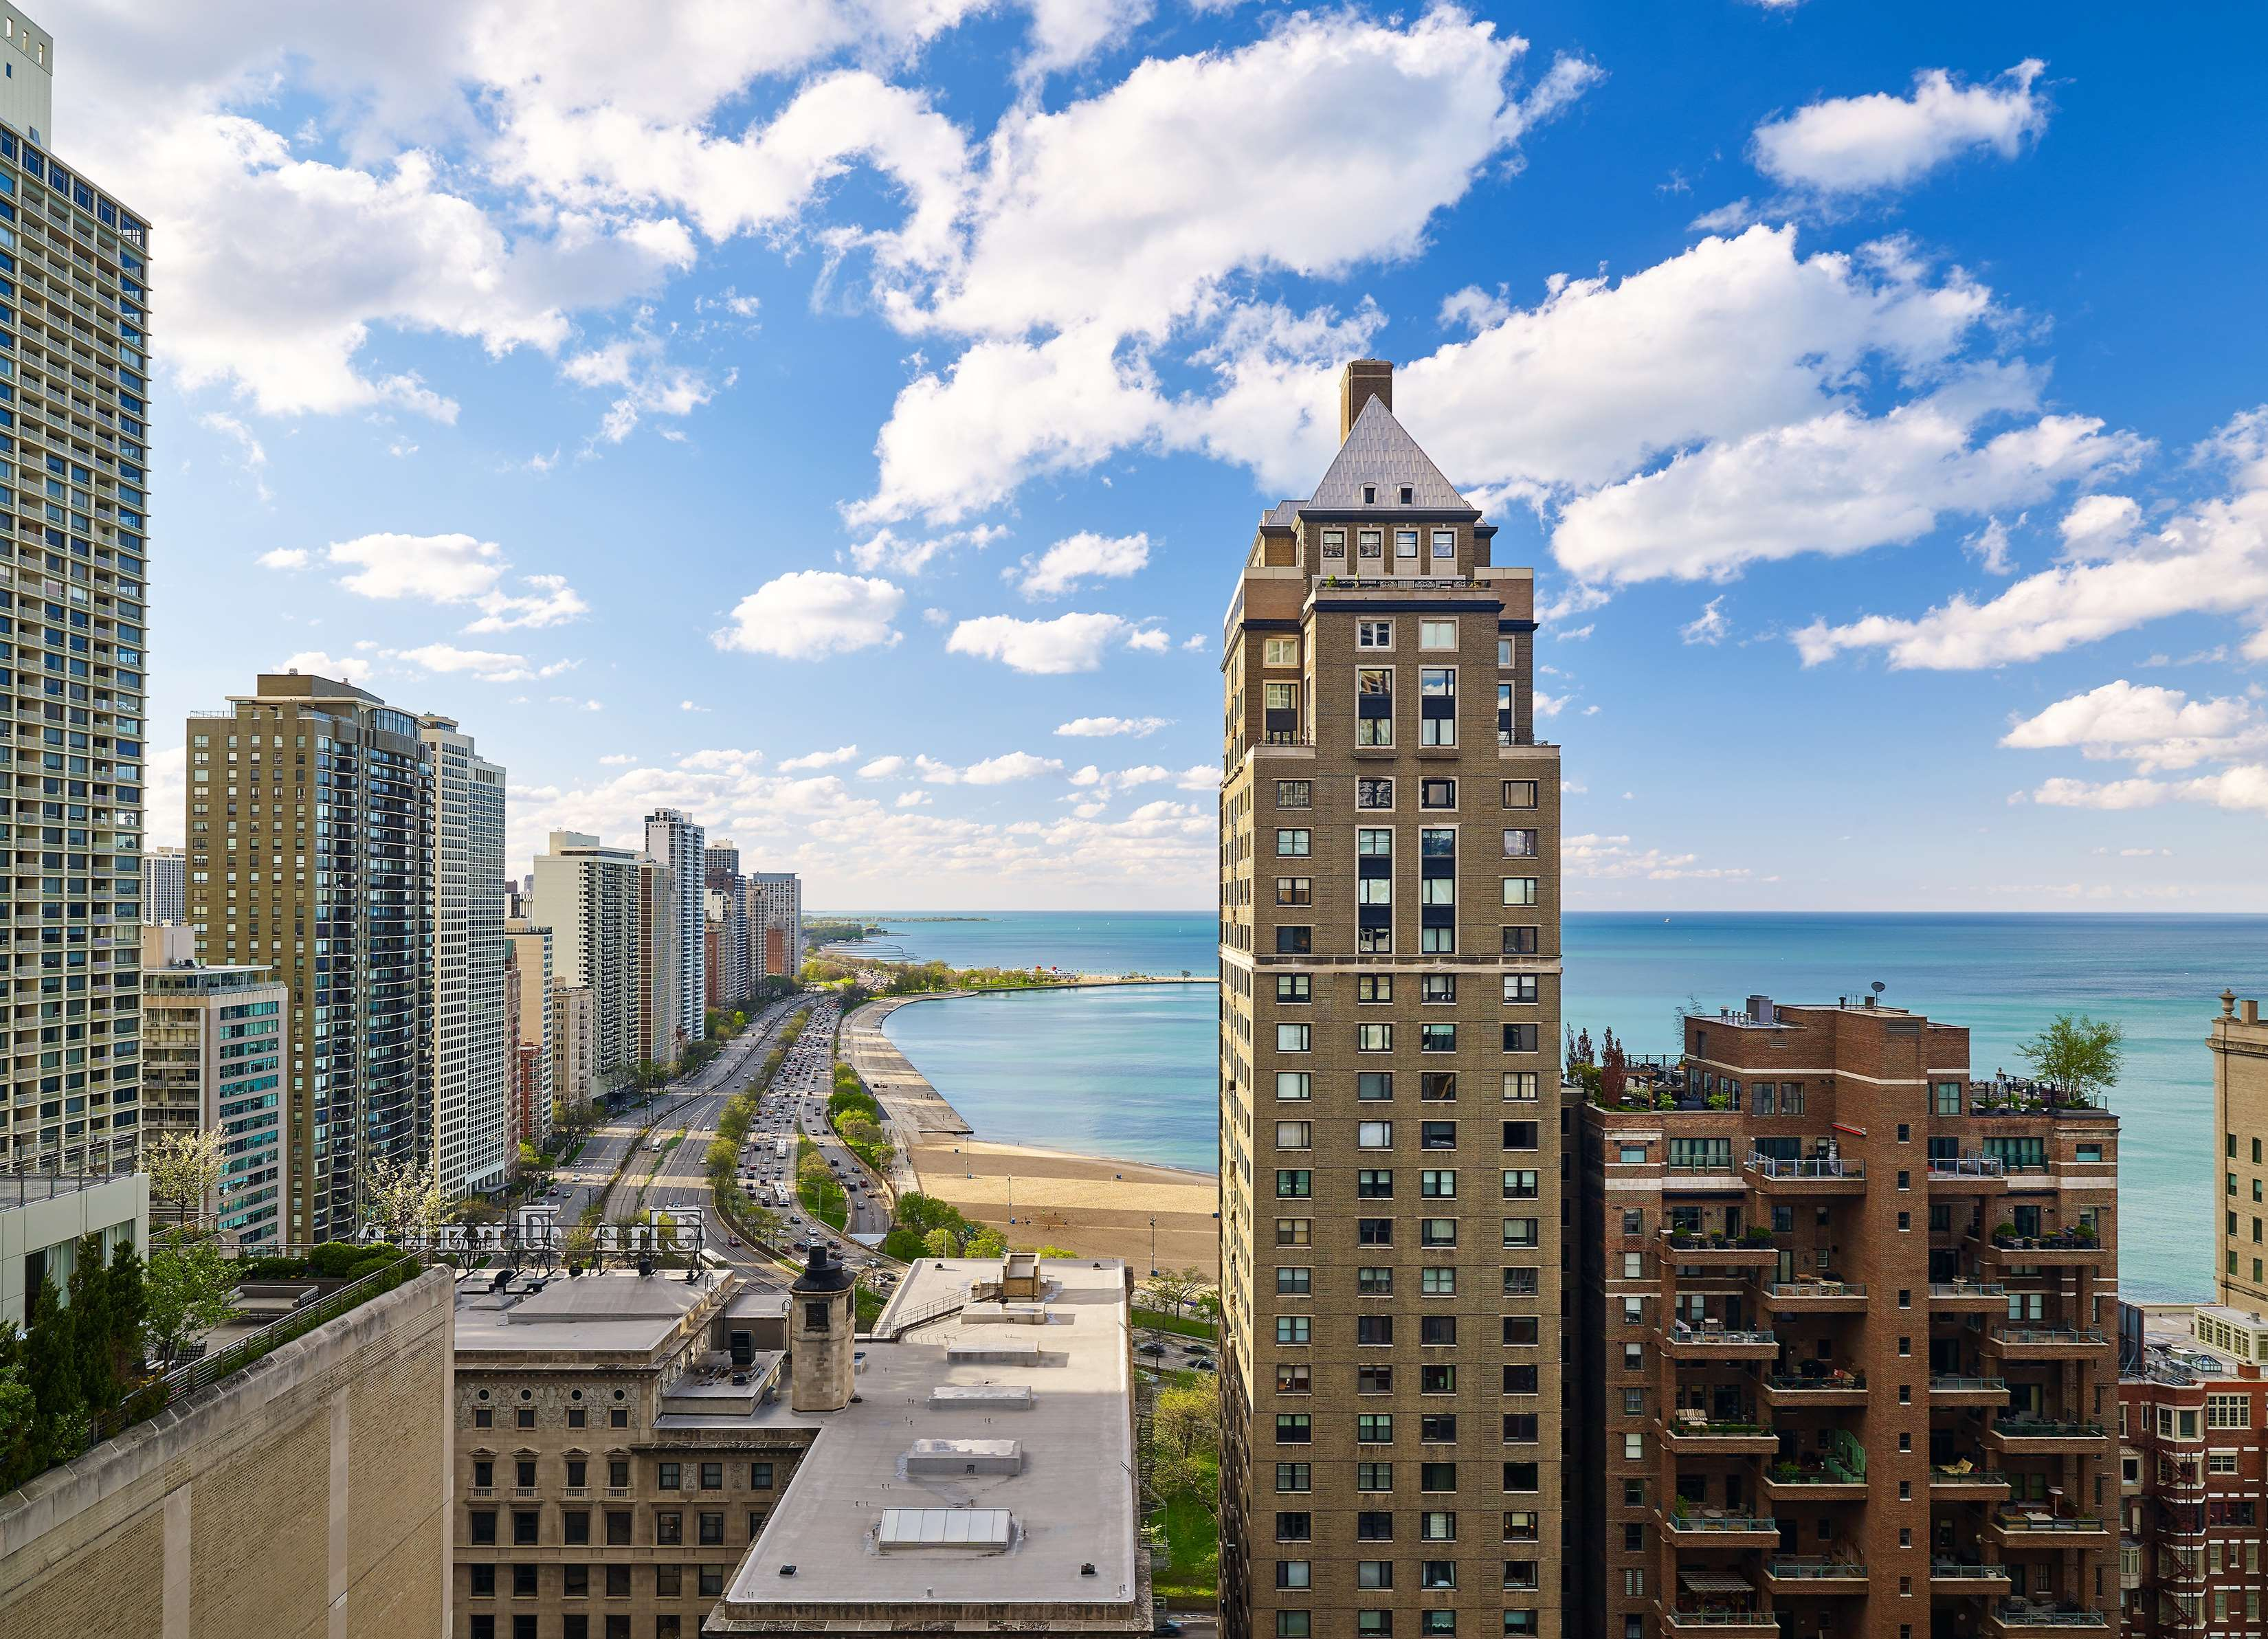 Westin chicago michigan ave restaurants may 23 2018 for Avenue hotel chicago